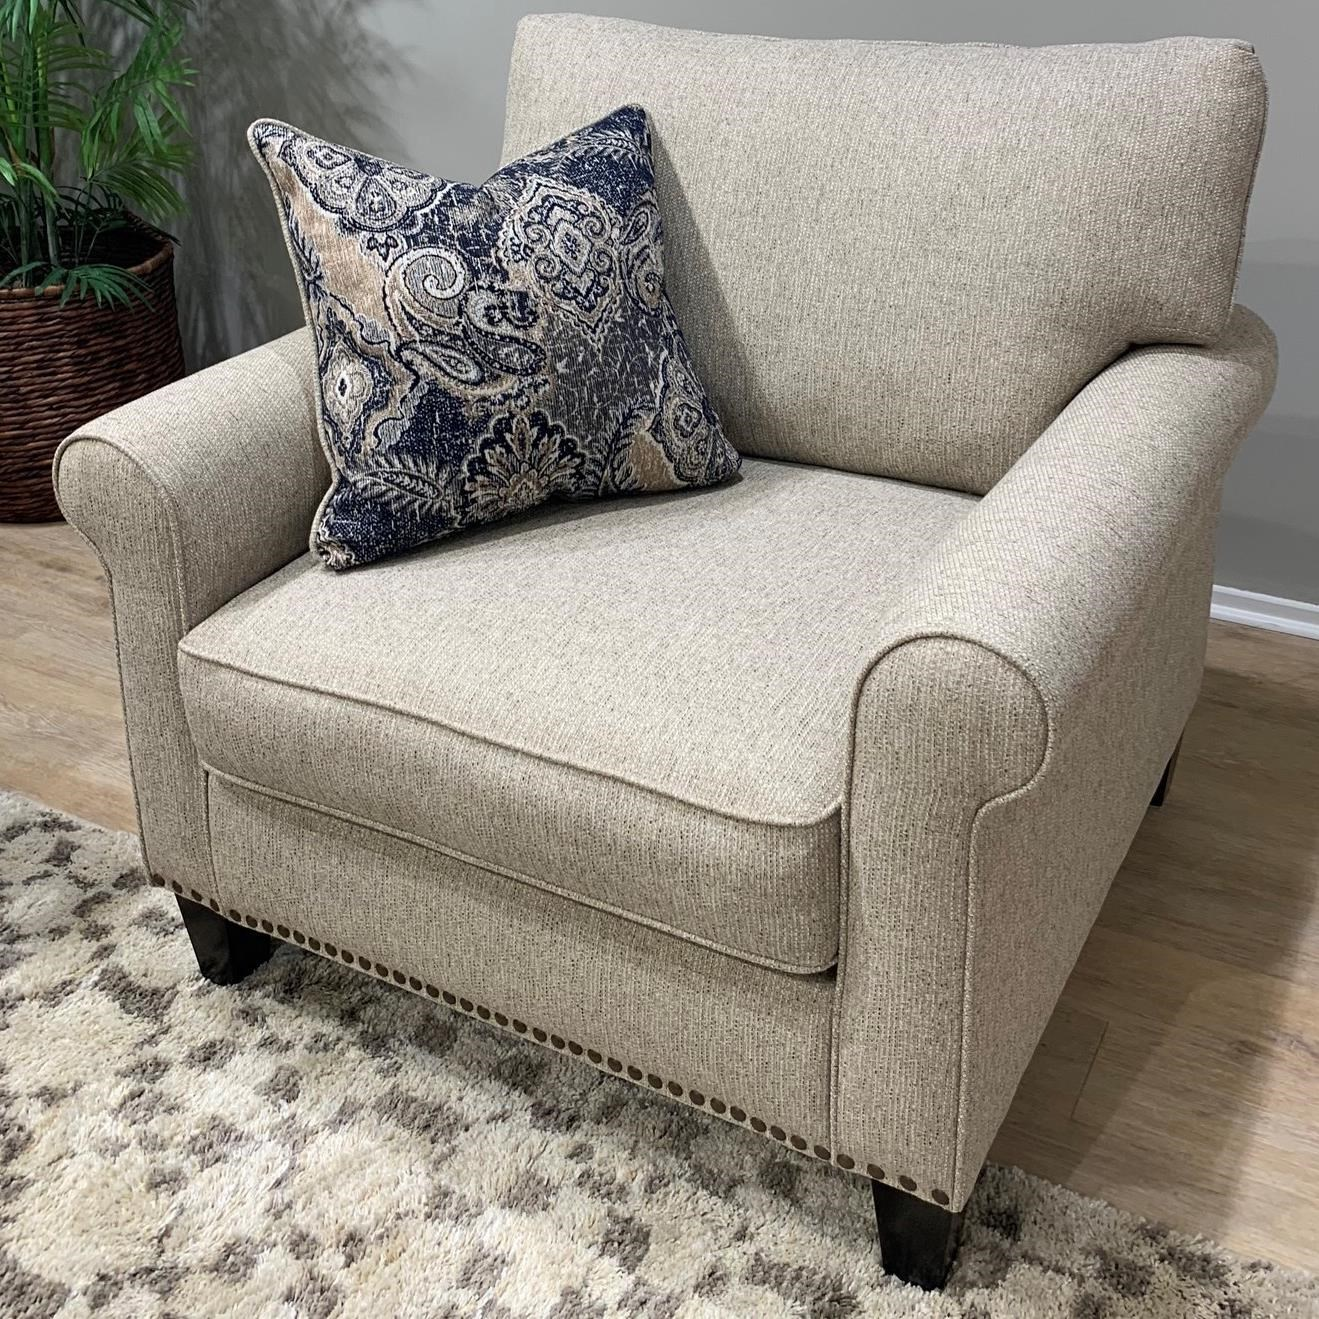 47-00 Chair by Fusion Furniture at Lindy's Furniture Company